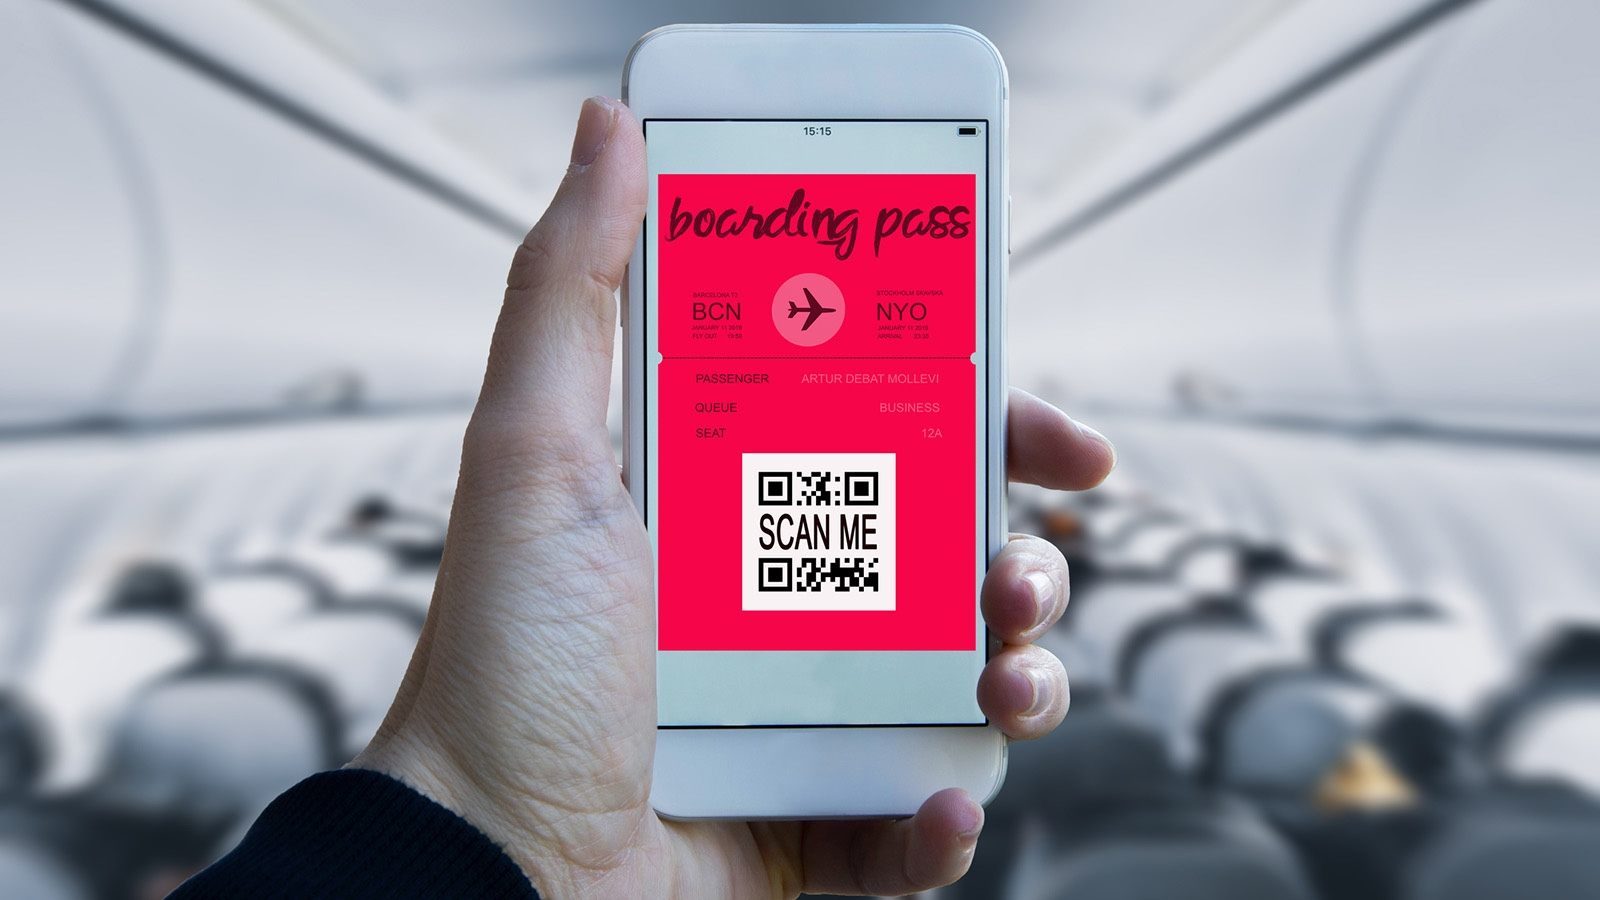 Boarding pass on a mobile phone